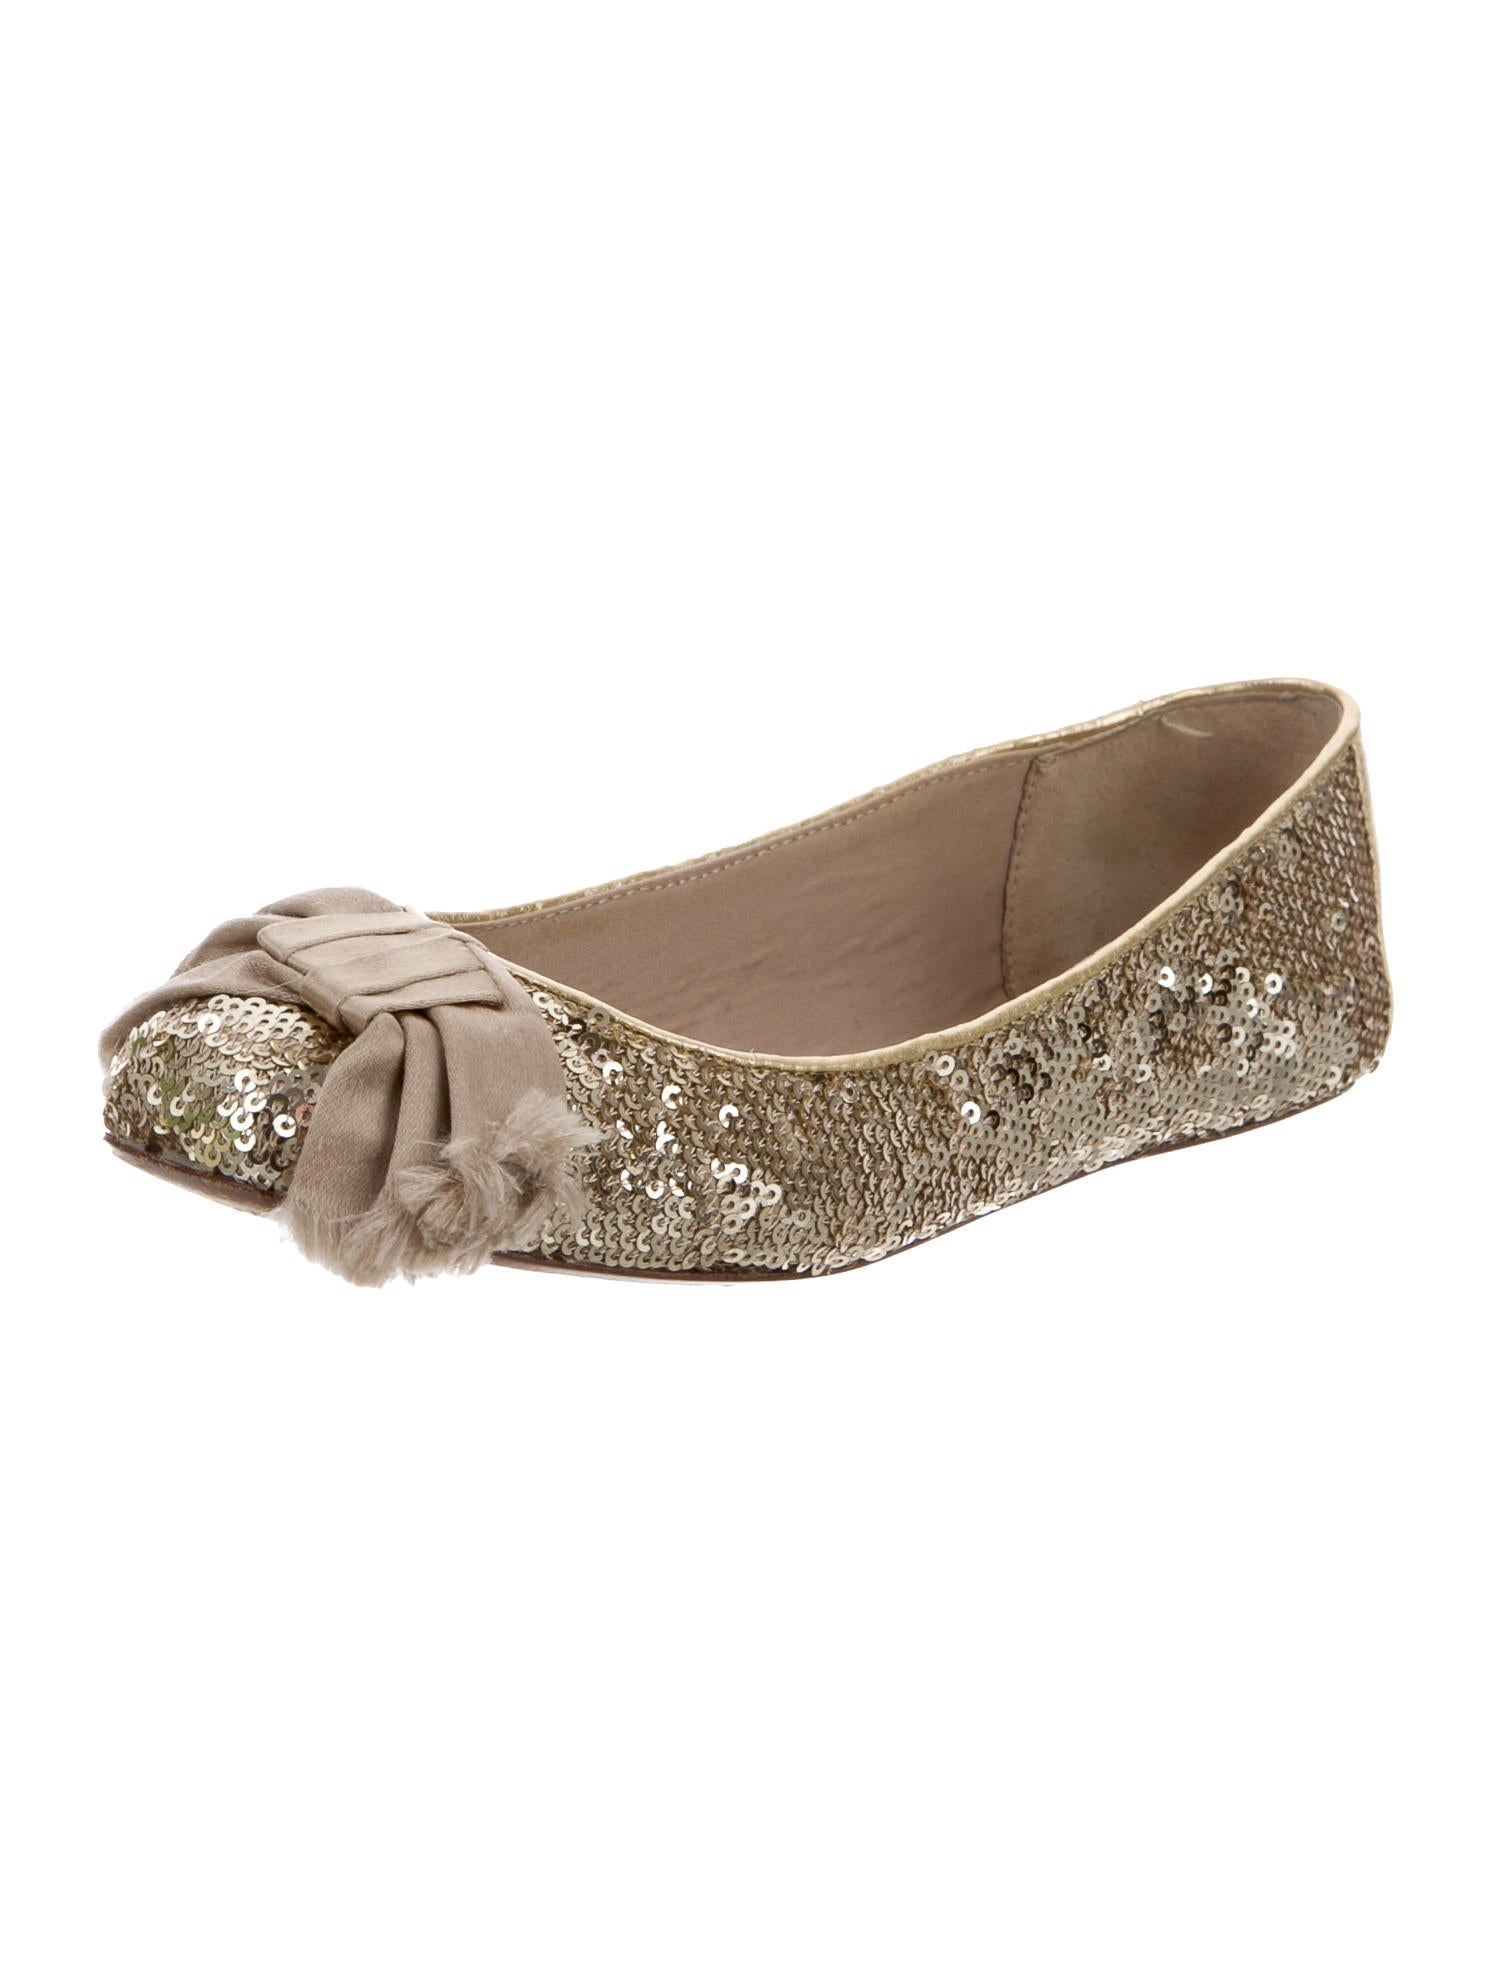 Kate spade new york bow accented sequined flats shoes for Kate spade new york flats